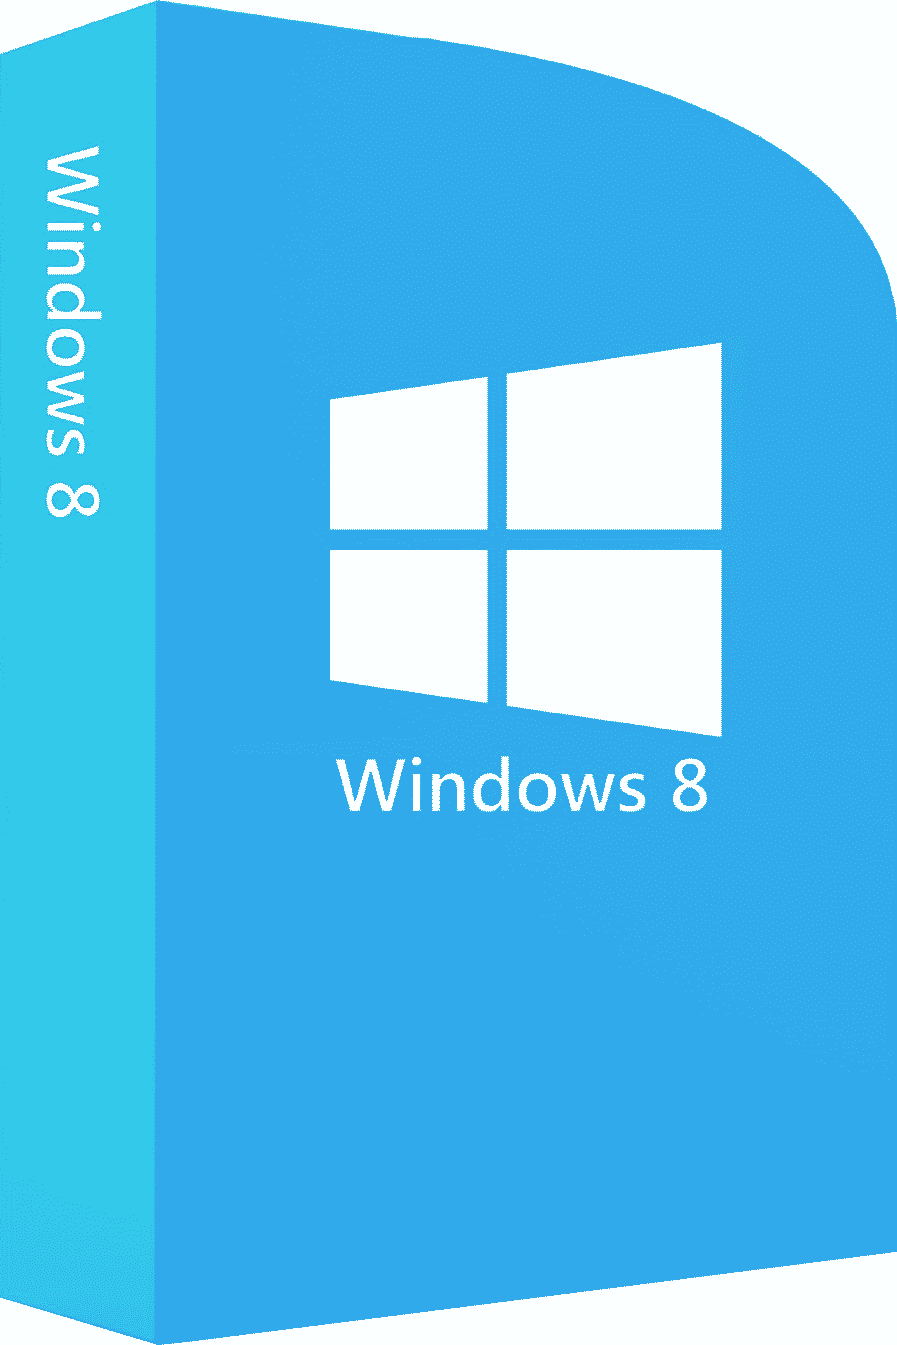 Windows 8 FINAL Todo En Uno (32 y 64 Bits) Co...